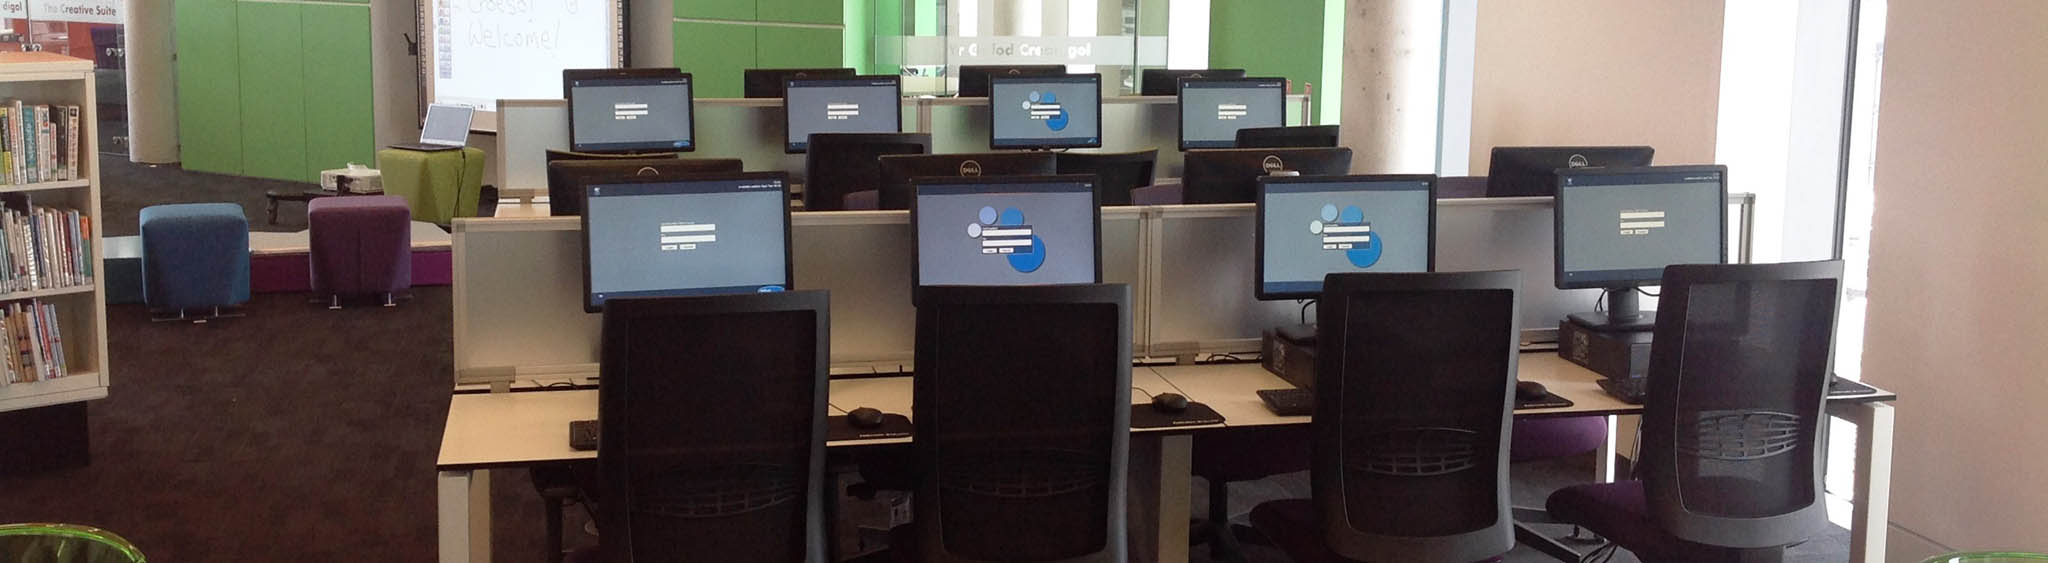 Photo of a computer classroom at Central Library